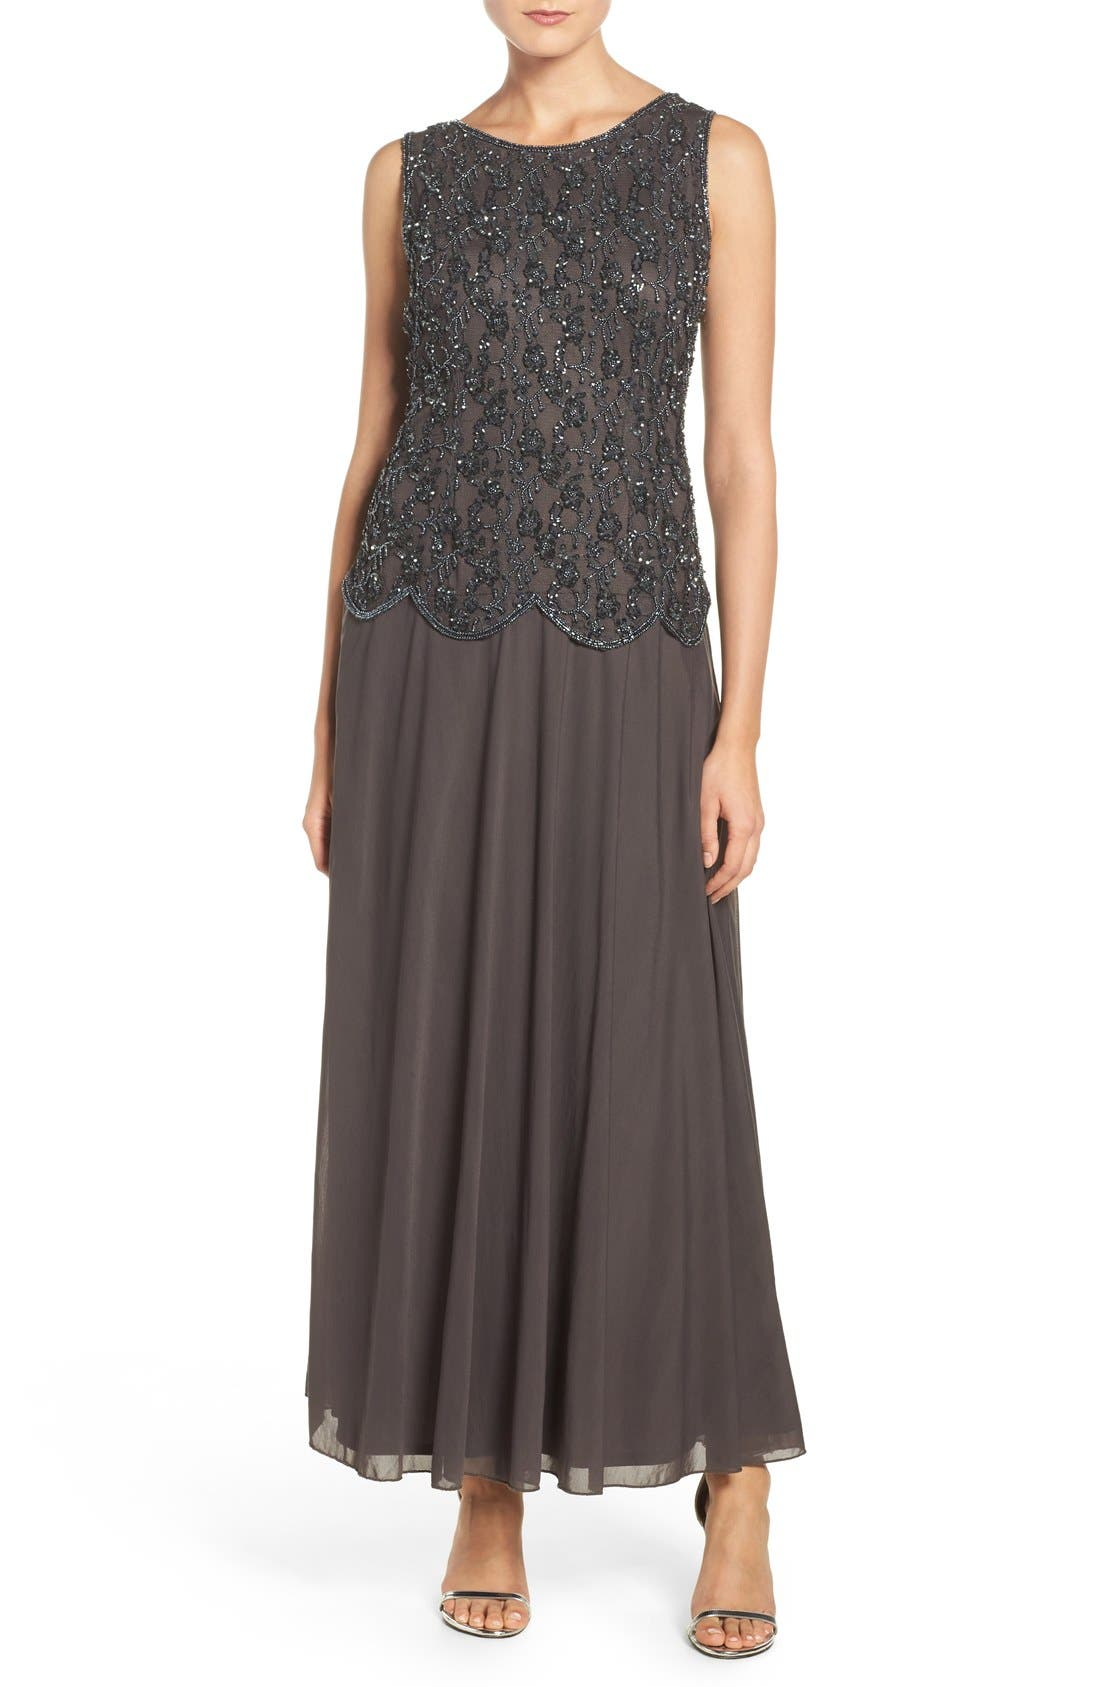 Alternate Image 1 Selected - Pisarro Nights Embellished Mesh Gown